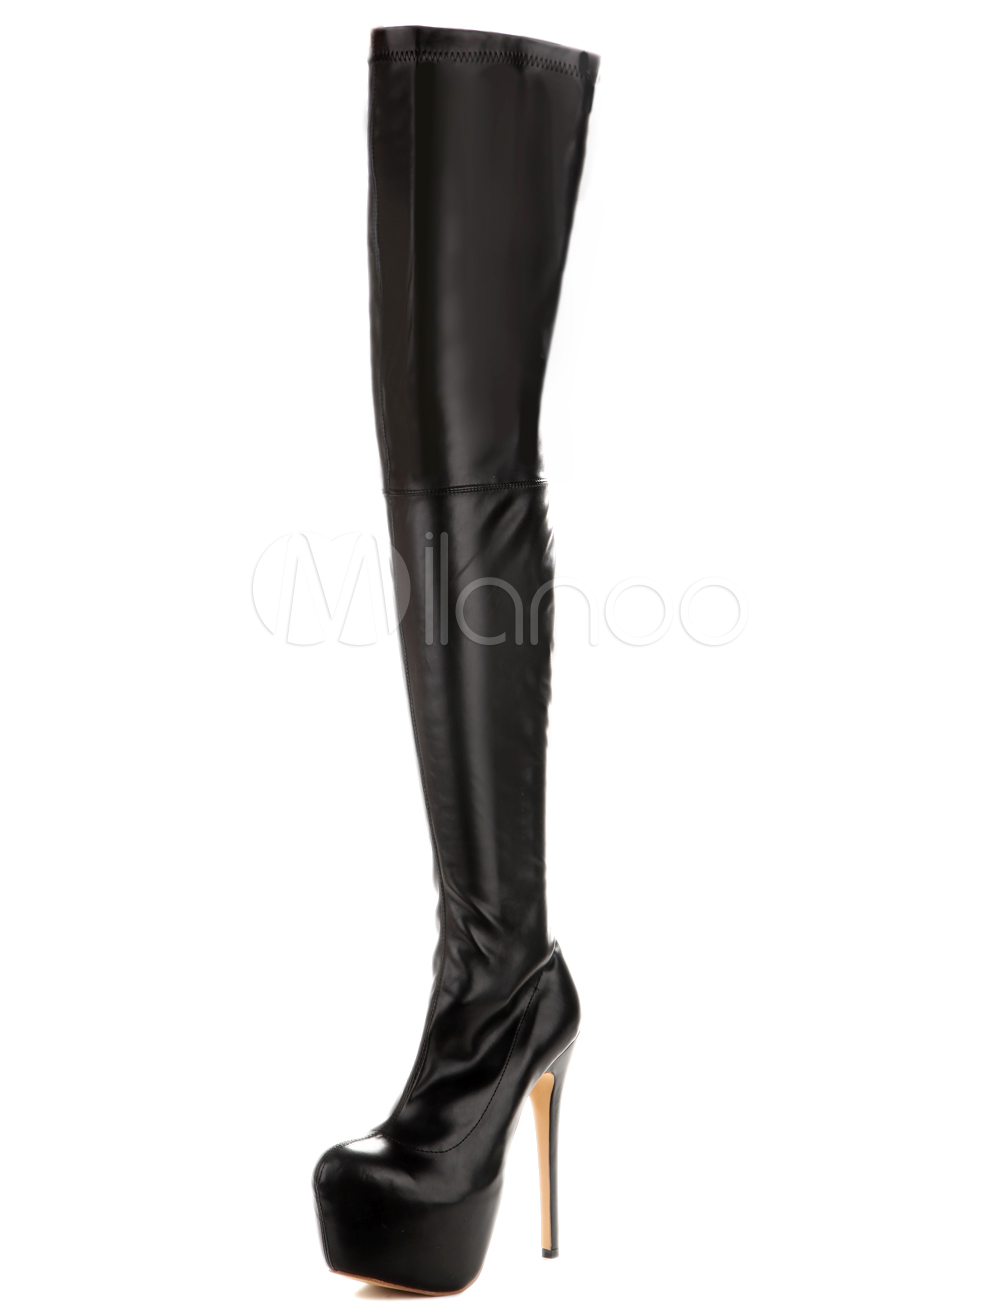 b06496a4f753 ... Thigh High Boots Black PU Leather Sexy Over Knee Boots For Woman-No.8.  12. 40%OFF. Color Black